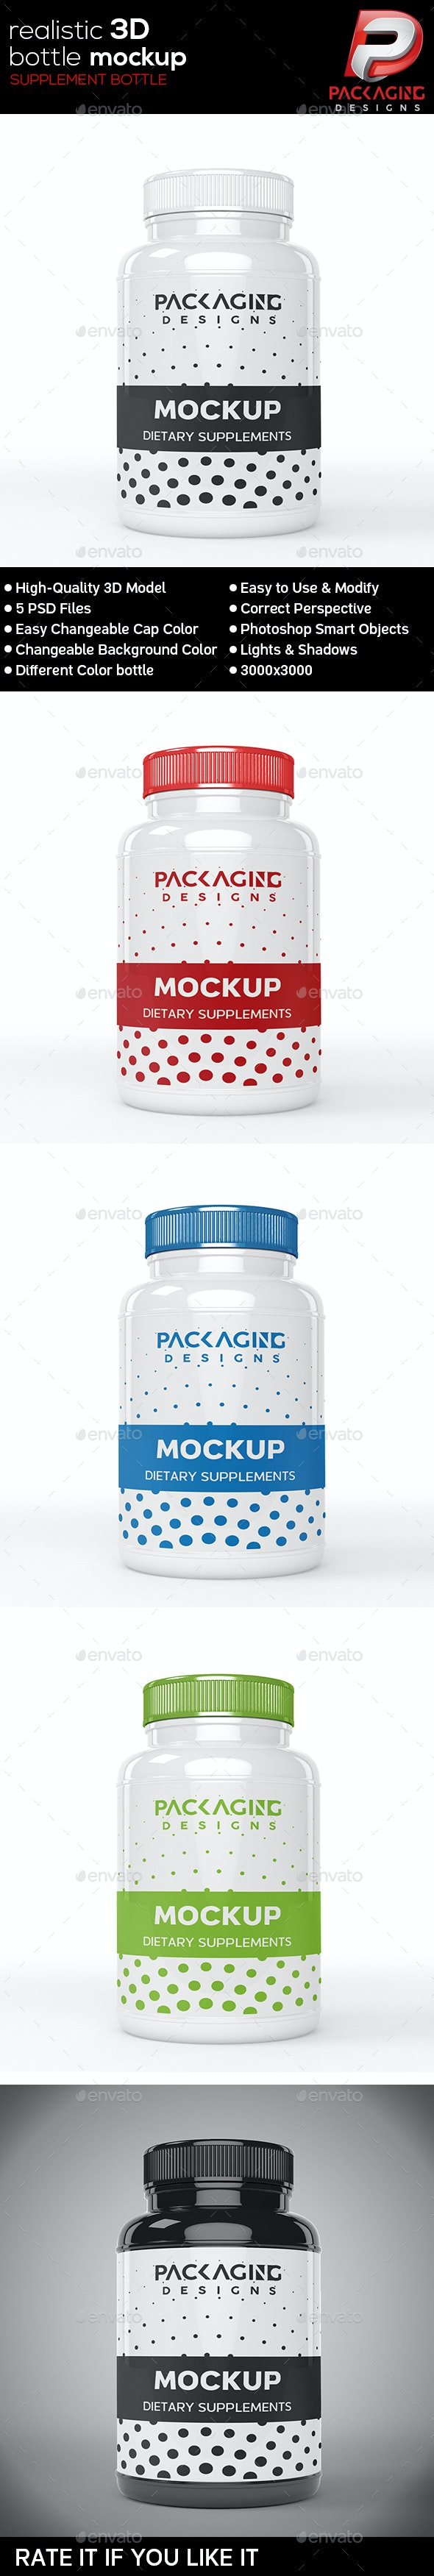 Realistic 3D Supplement Bottle Mock-Up-4 - Packaging Product Mock-Ups